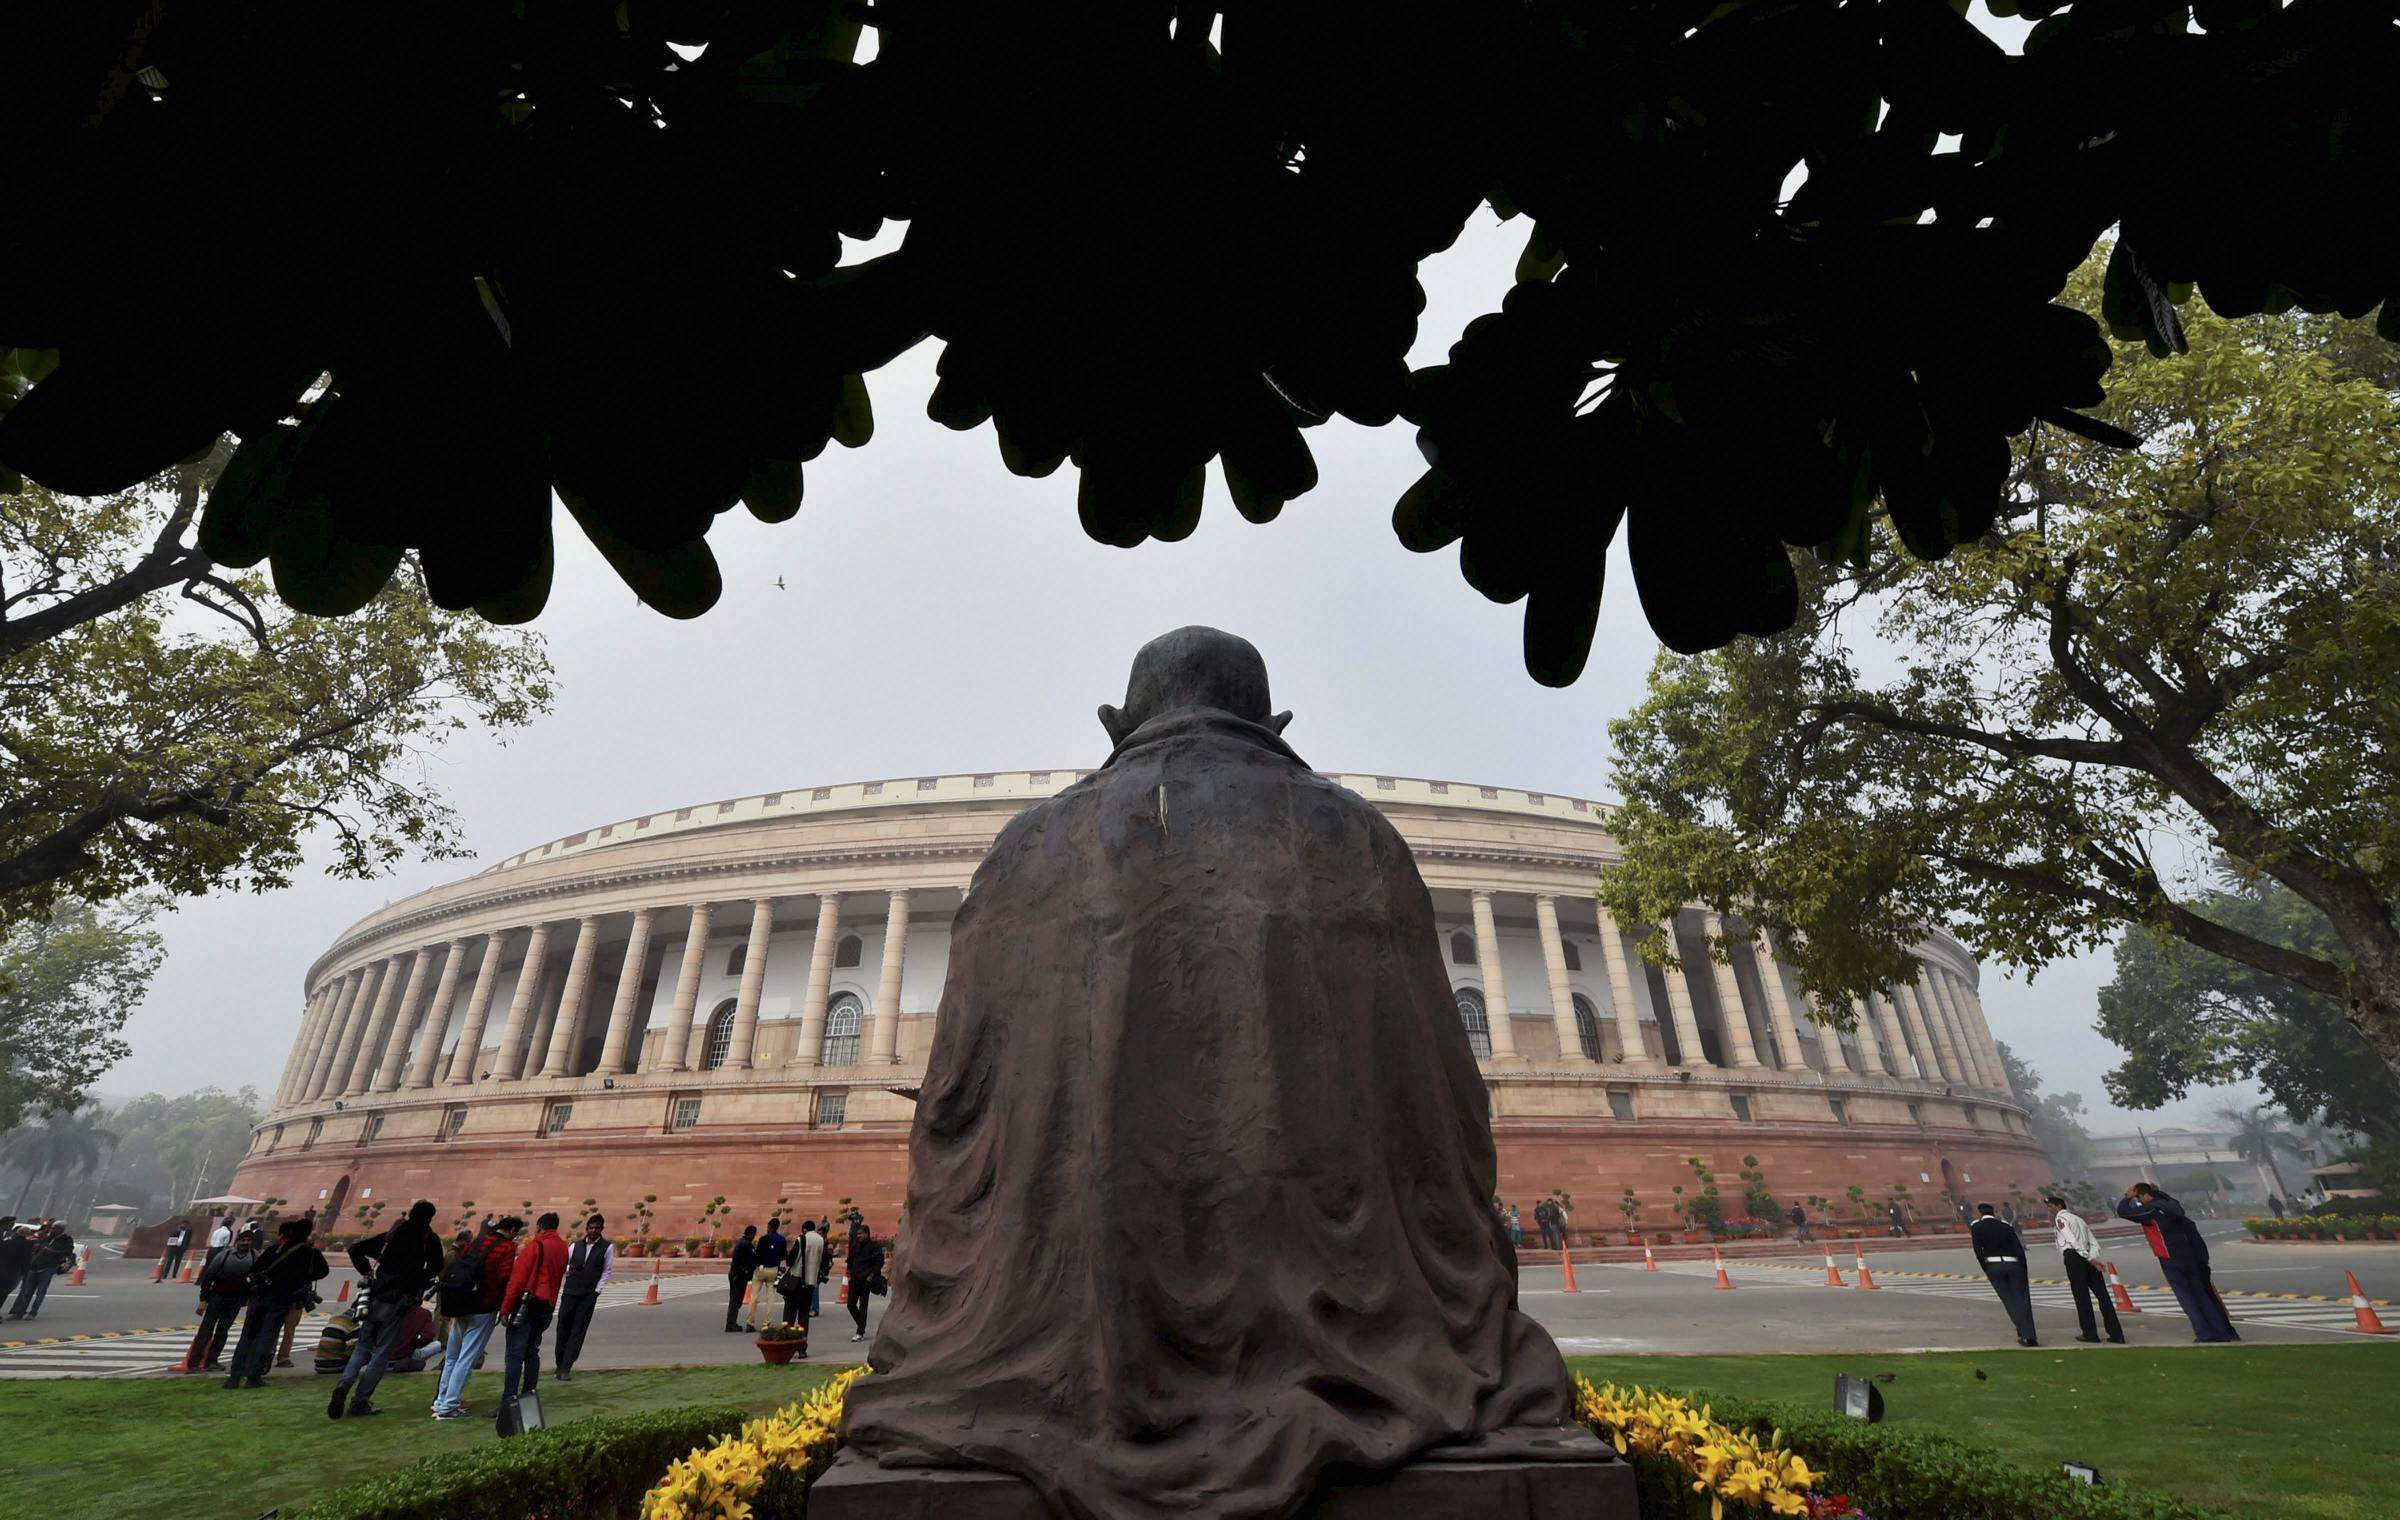 The Lok Sabha found itself engaged in a procedurally compliant and model debate on the Mental Healthcare Bill. Credit: PTI